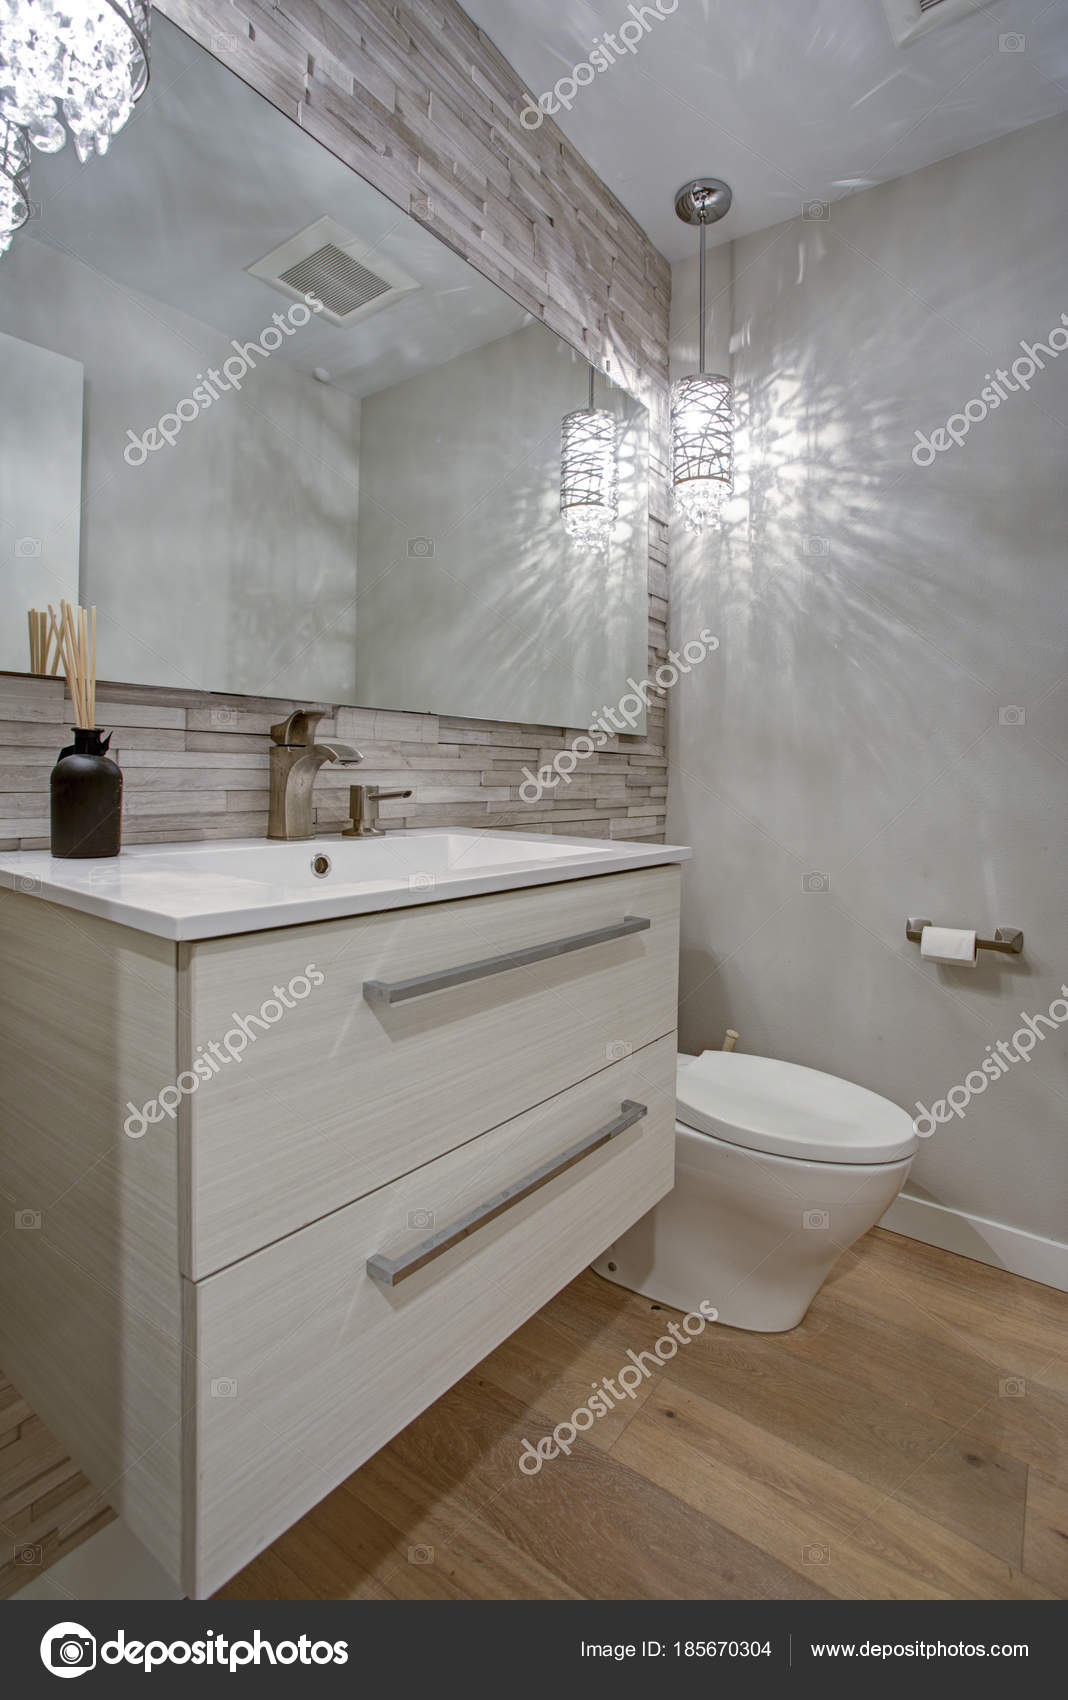 - Contemporary Bathroom Design With Taupe Linear Tiles Accent Wall